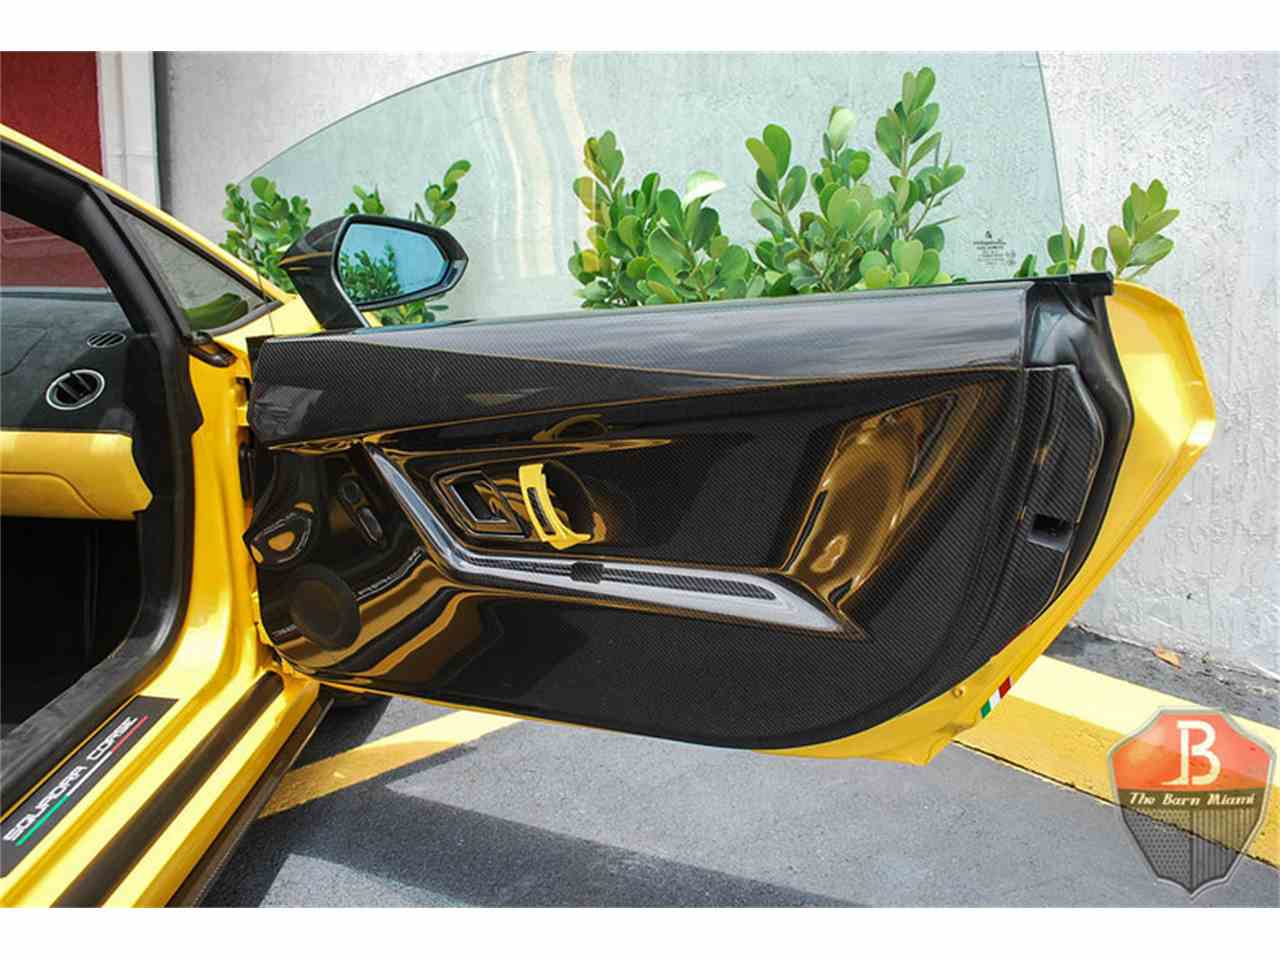 Large Picture of 2014 Gallardo Squadra Corse - $244,900.00 Offered by The Barn Miami - IRP5